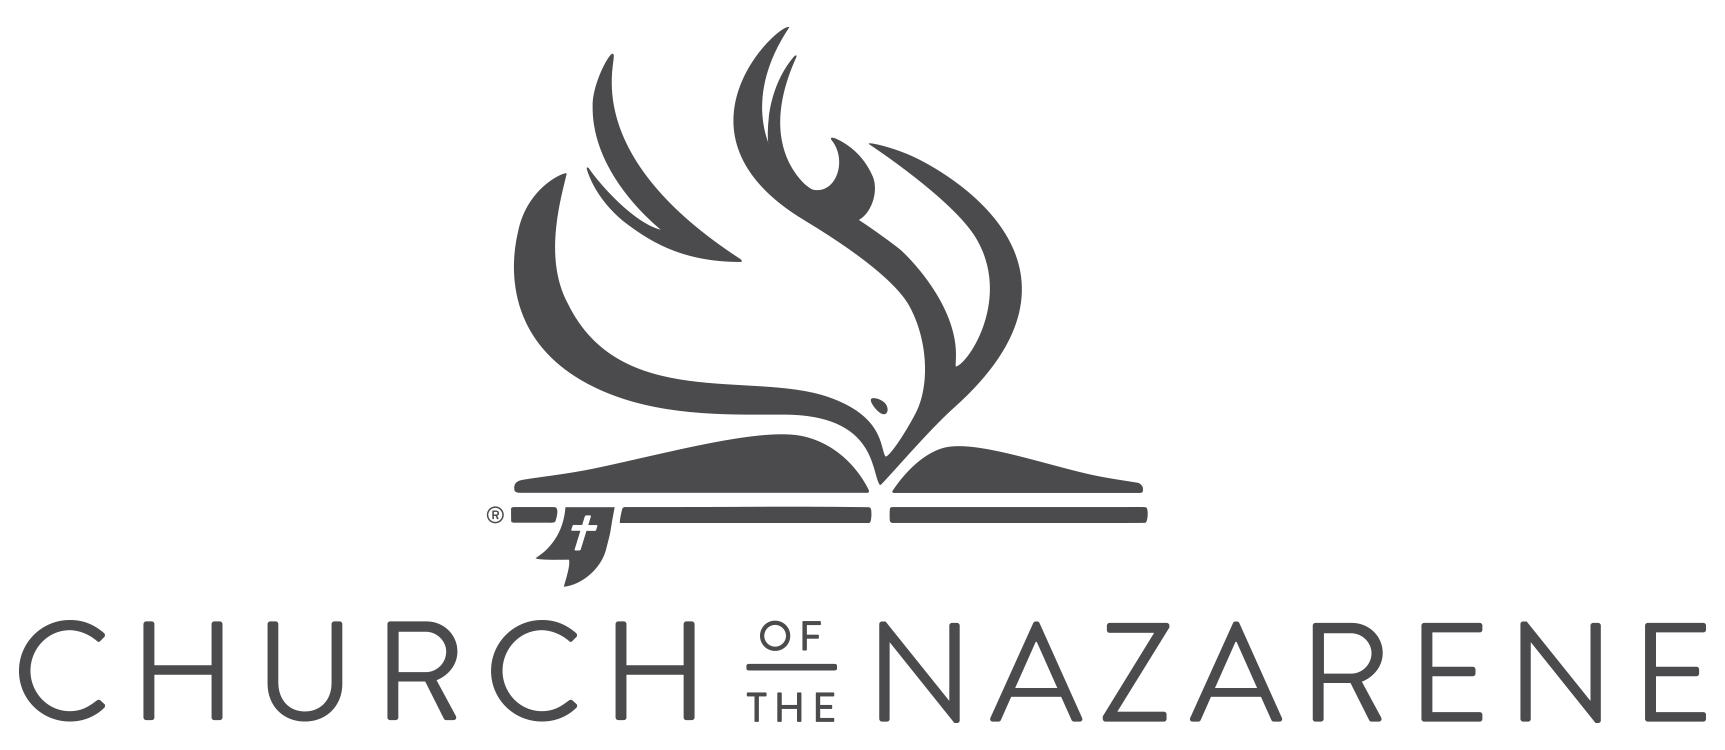 Church logos png. Of the nazarene logowidetextpng